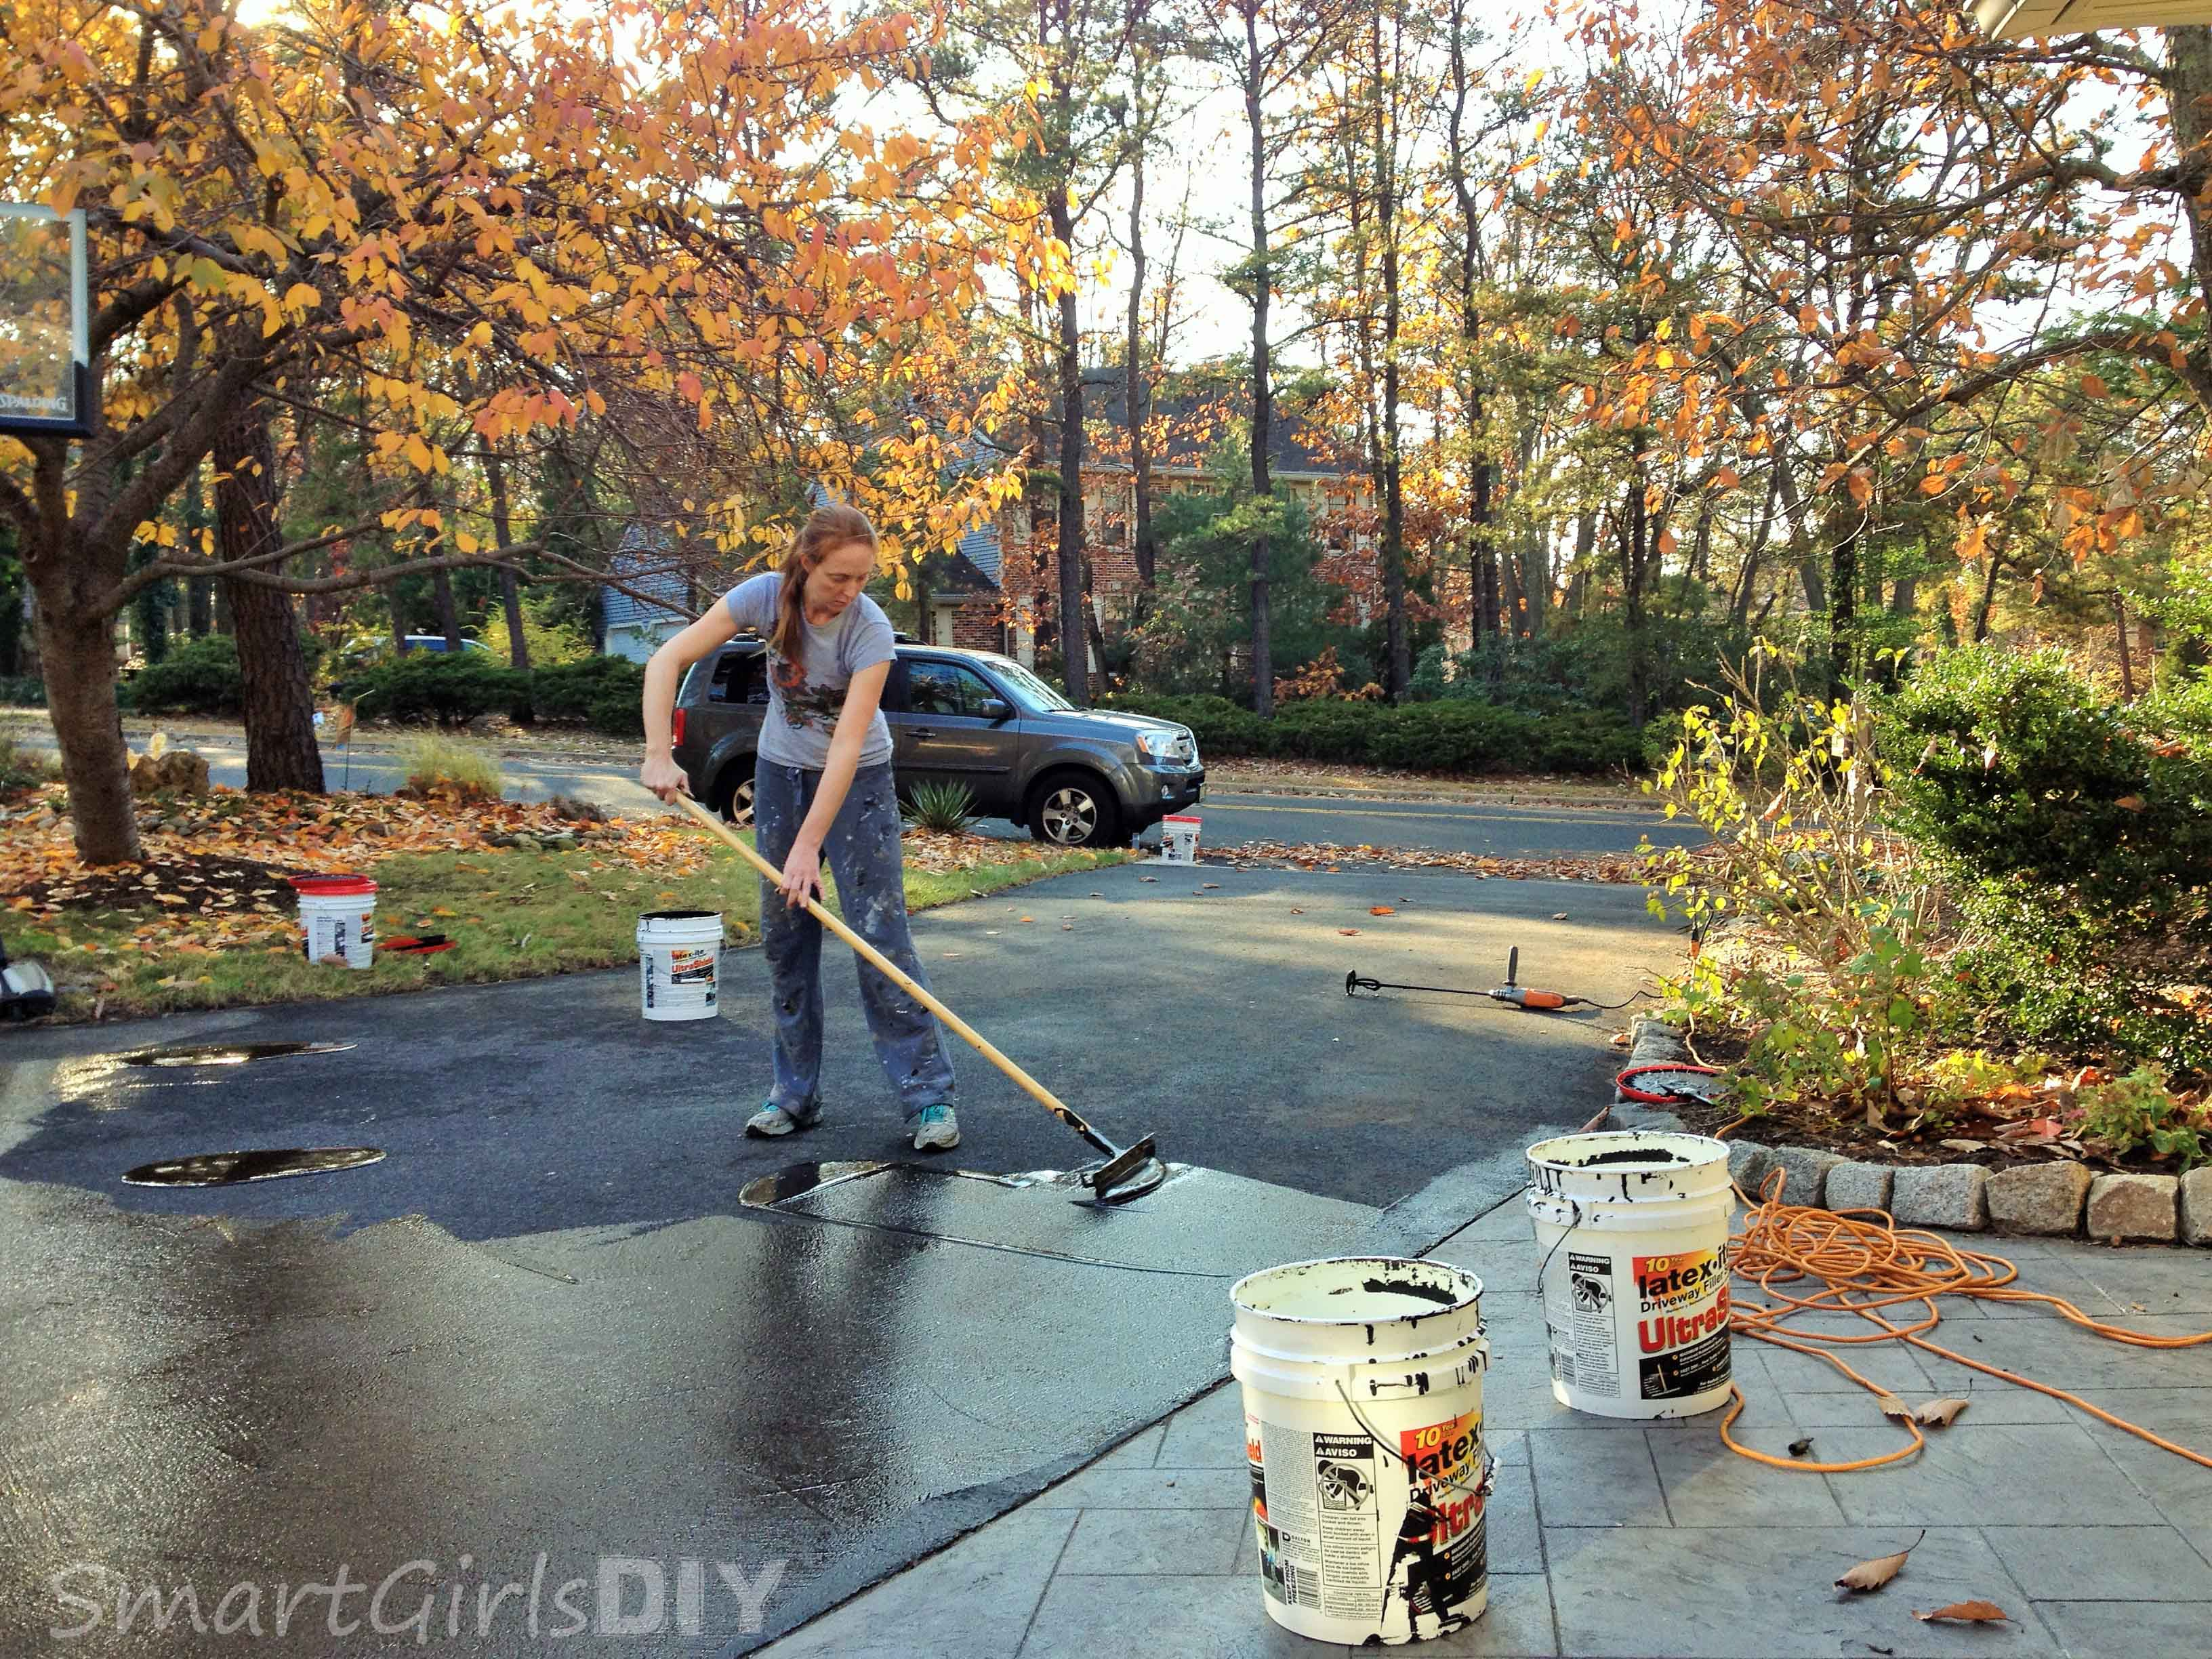 How to Seal an Asphalt Driveway Yourself